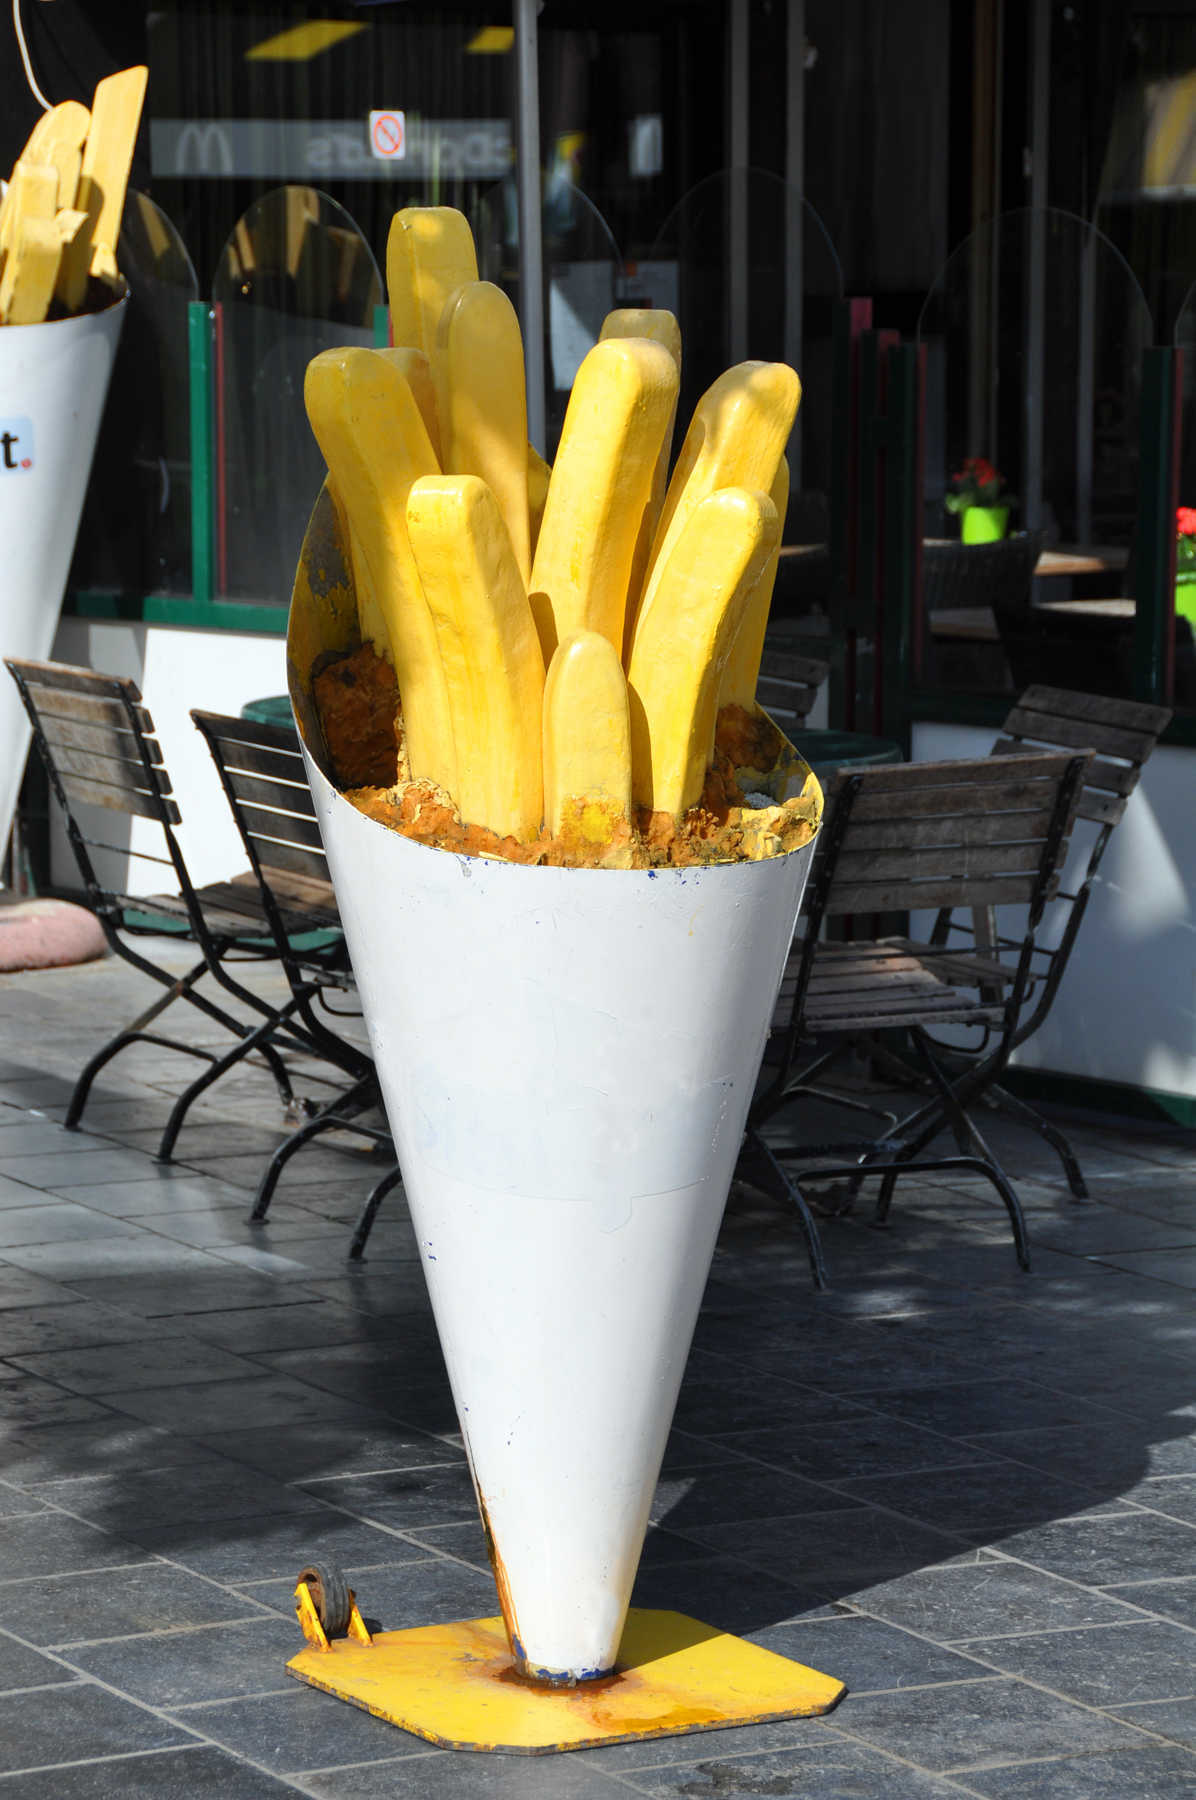 Big Fries in Bruges, Belgium